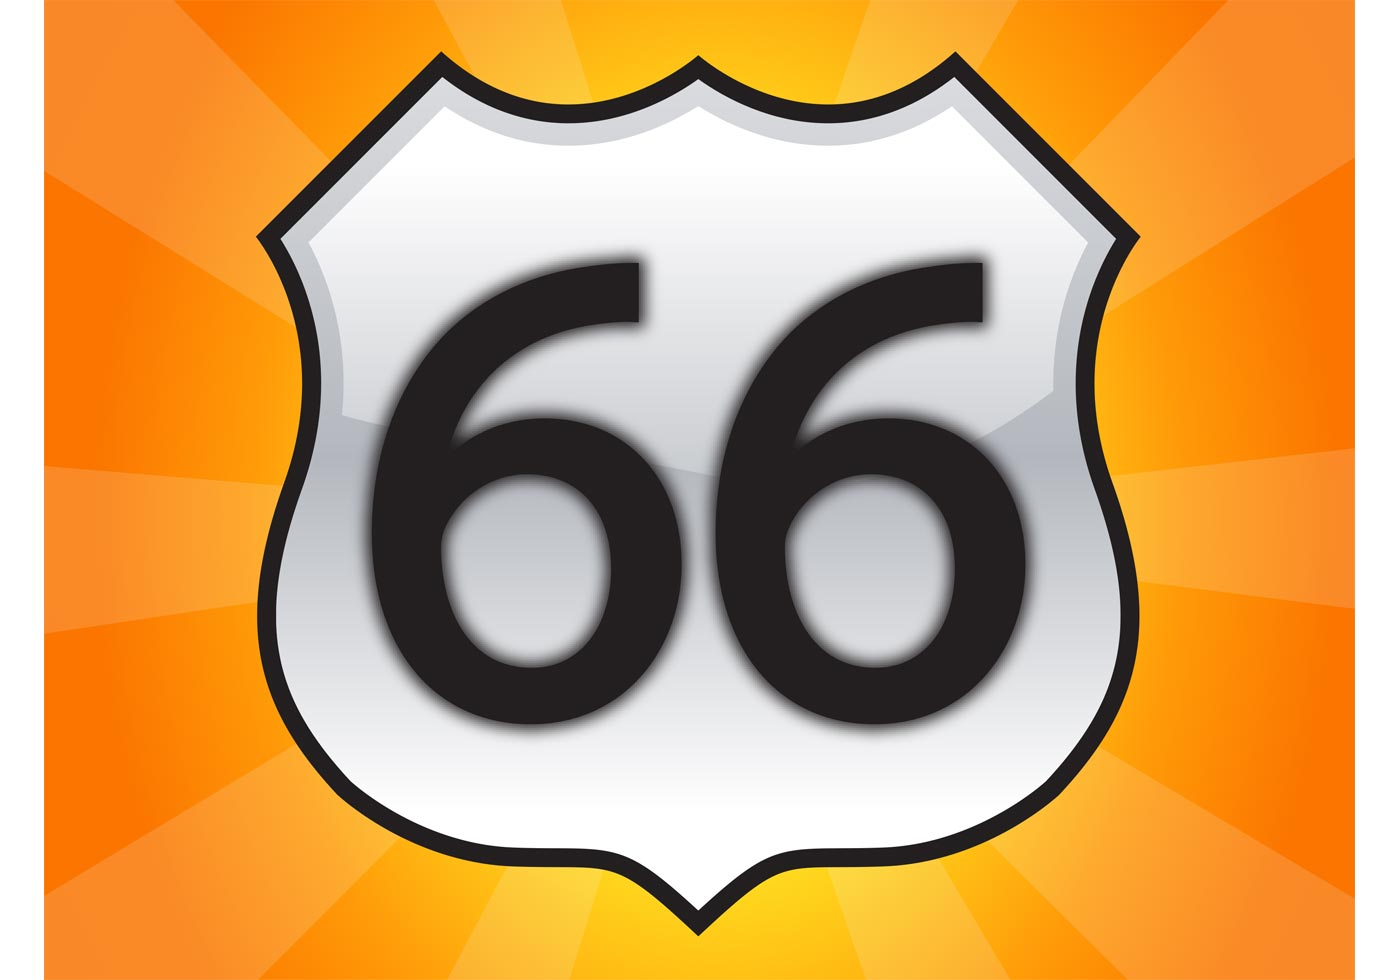 1400x980 Route 66 Sign Free Vector Art